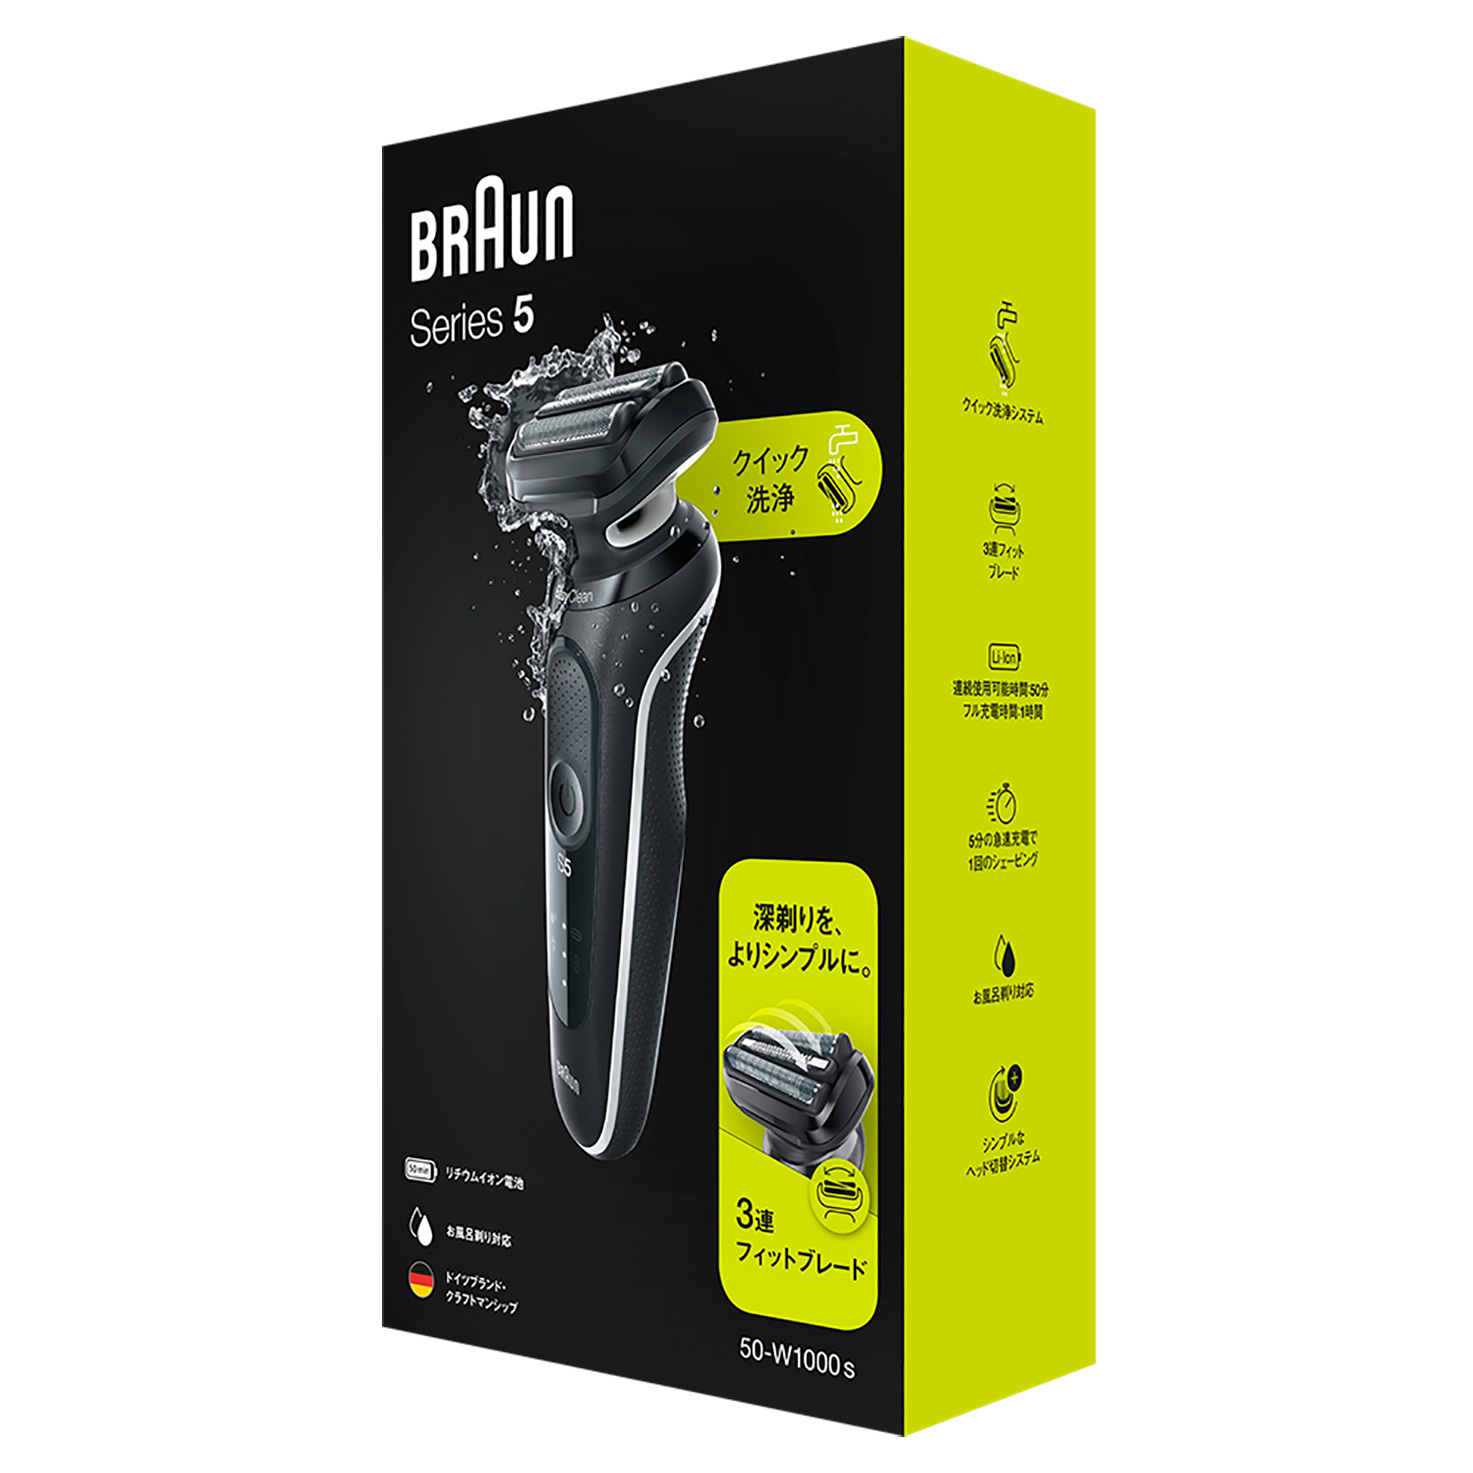 Braun Series 5 50-W1000s Electric Shaver